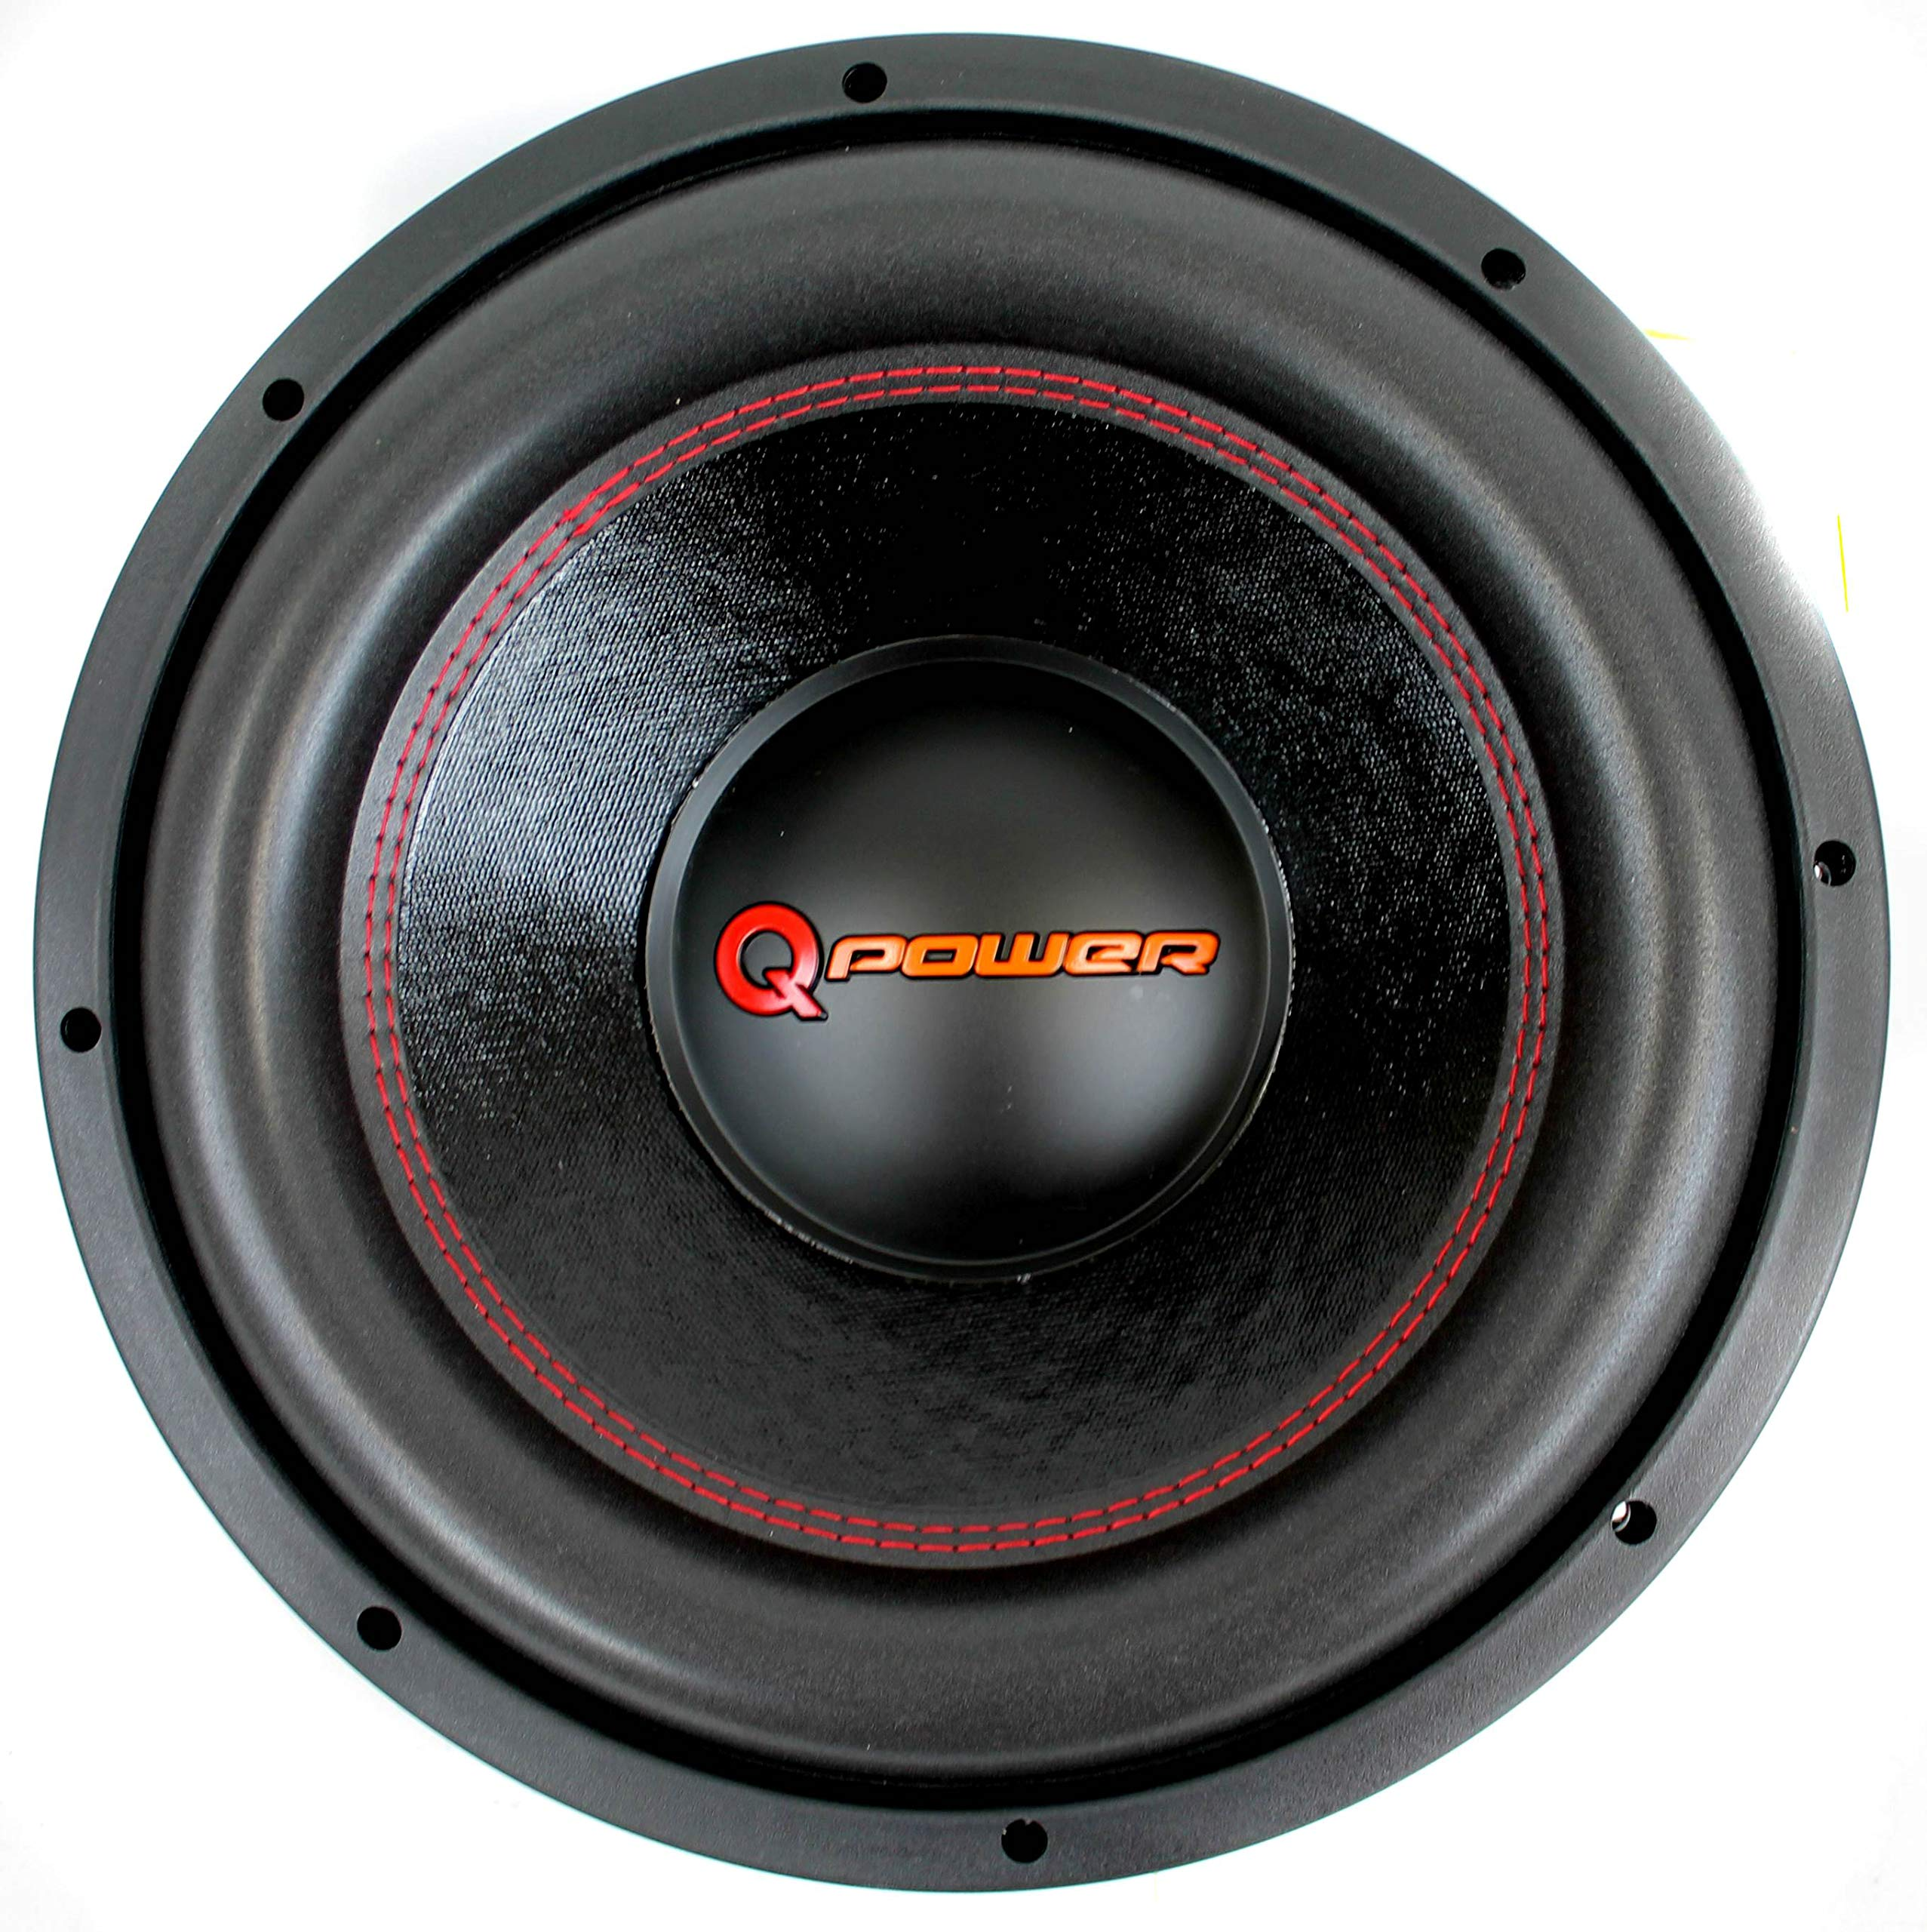 Amazon Com Q Power 15 Inch 4000 Watt Super Deluxe Subwoofer Dvc Car Audio Sub Qp15 Super Sports Outdoors